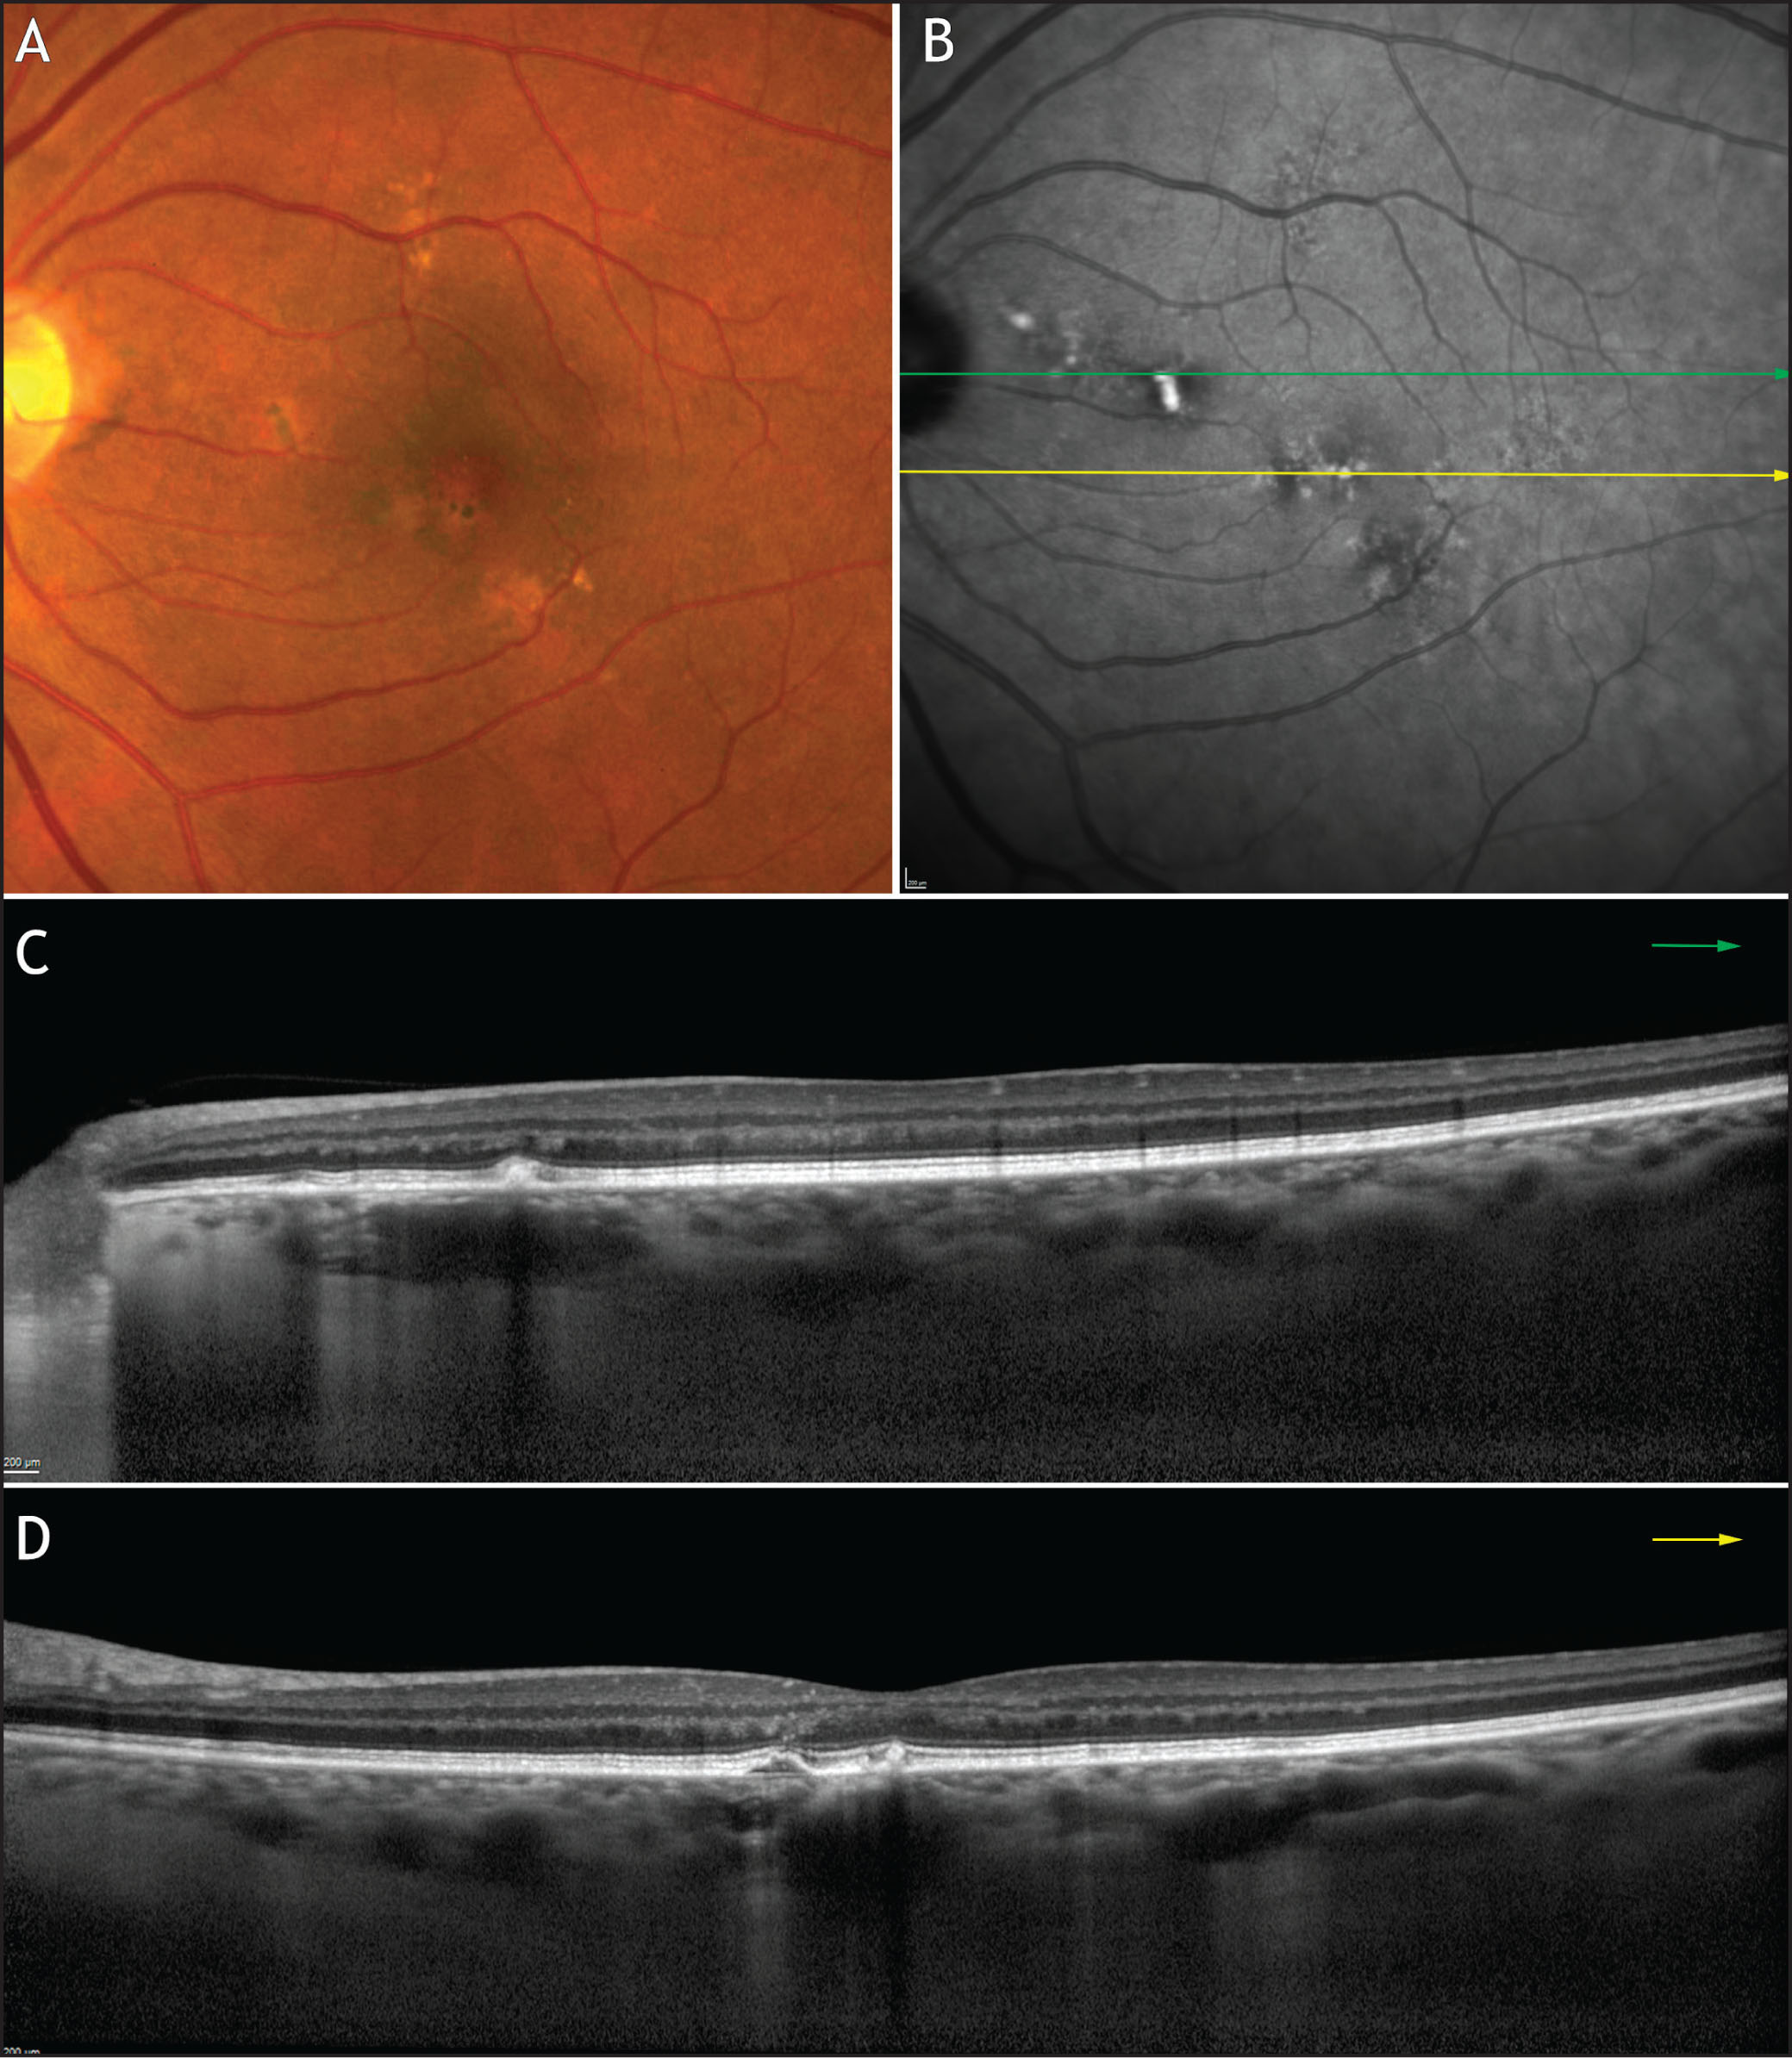 �A;Multimodal imaging of a 63-year-old woman with pachychoroid pigment epitheliopathy. (A) Color fundus photography shows nonspecific perifoveal mottling of the retinal pigment epithelium (RPE), previously attributed to non-neovascular age-related macular degeneration. (B) Near-infrared reflectance (NIR) highlights the RPE alterations. (C, D) Enhanced-depth imaging optical coherence tomography (EDI-OCT) shows large, dilated choroidal pachyvessels directly beneath the RPE abnormalities with loss of Sattler's layer. Multimodal imaging with the combination of color photography, NIR, and EDI-OCT highlights the RPE abnormalities and illustrates a thickened choroid with dilated pachyvessels consistent with a diagnosis of pachychoroid pigment epitheliopathy.�A;